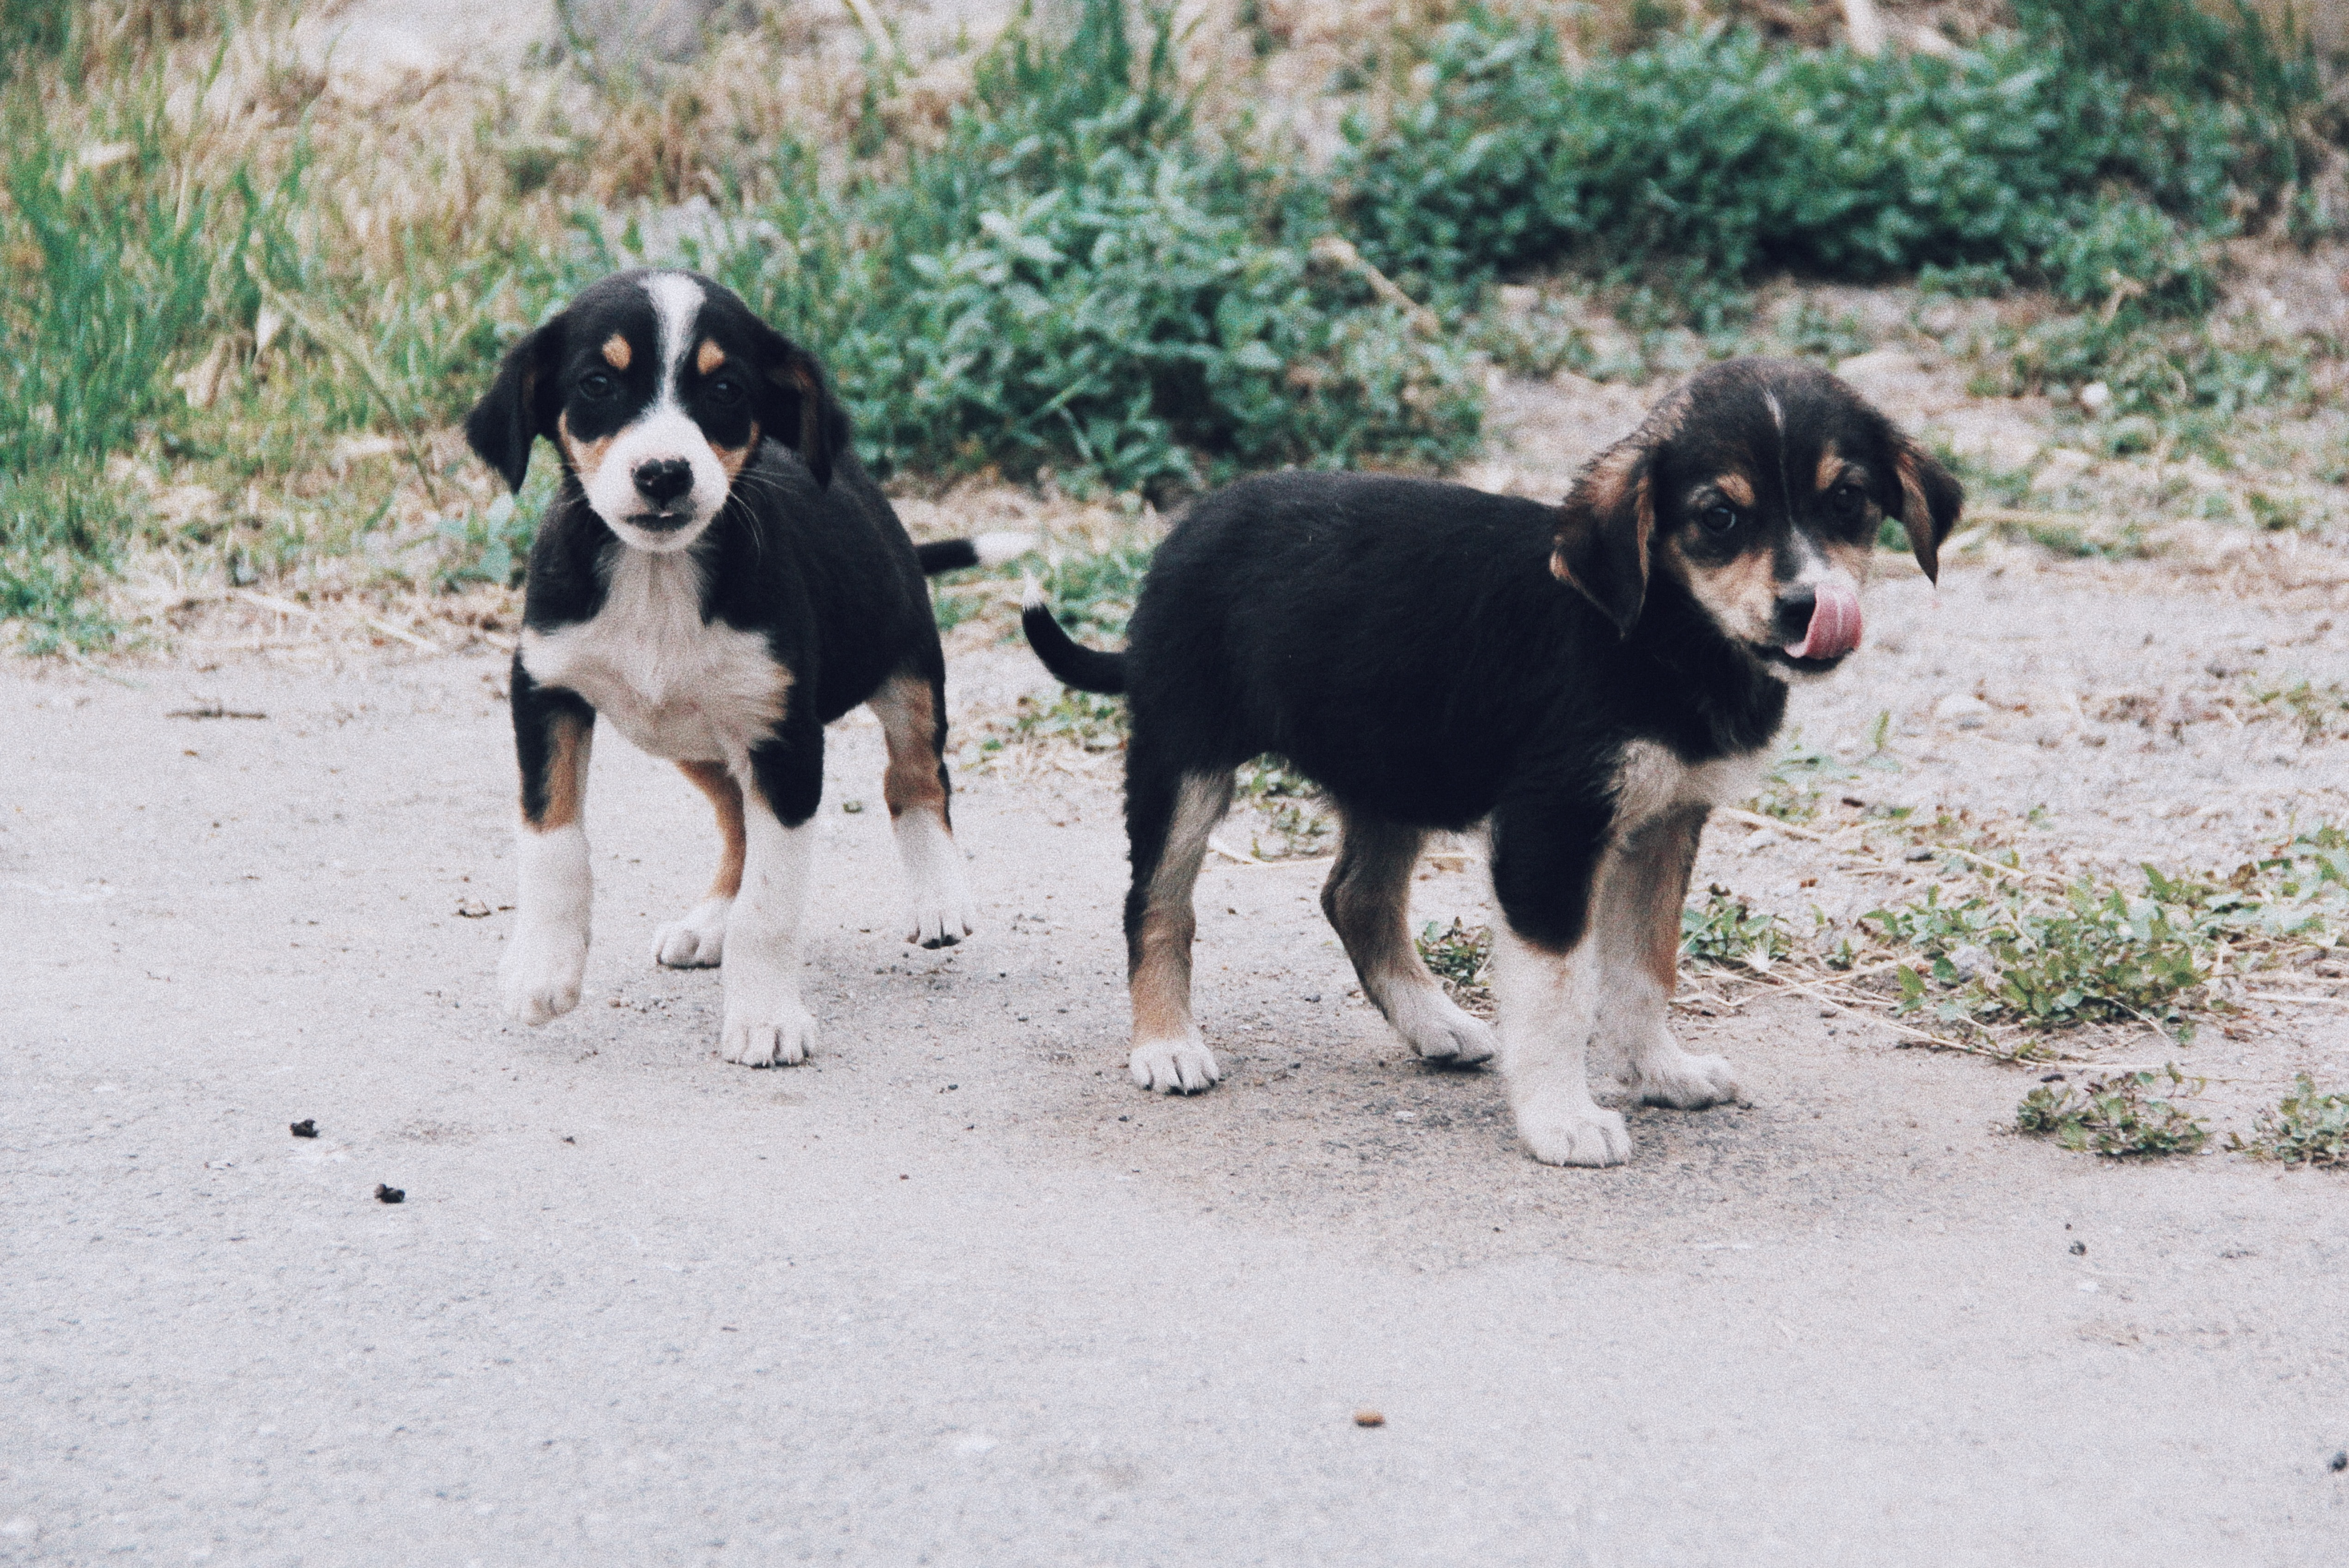 two short-coated tri-color puppies walking on ground